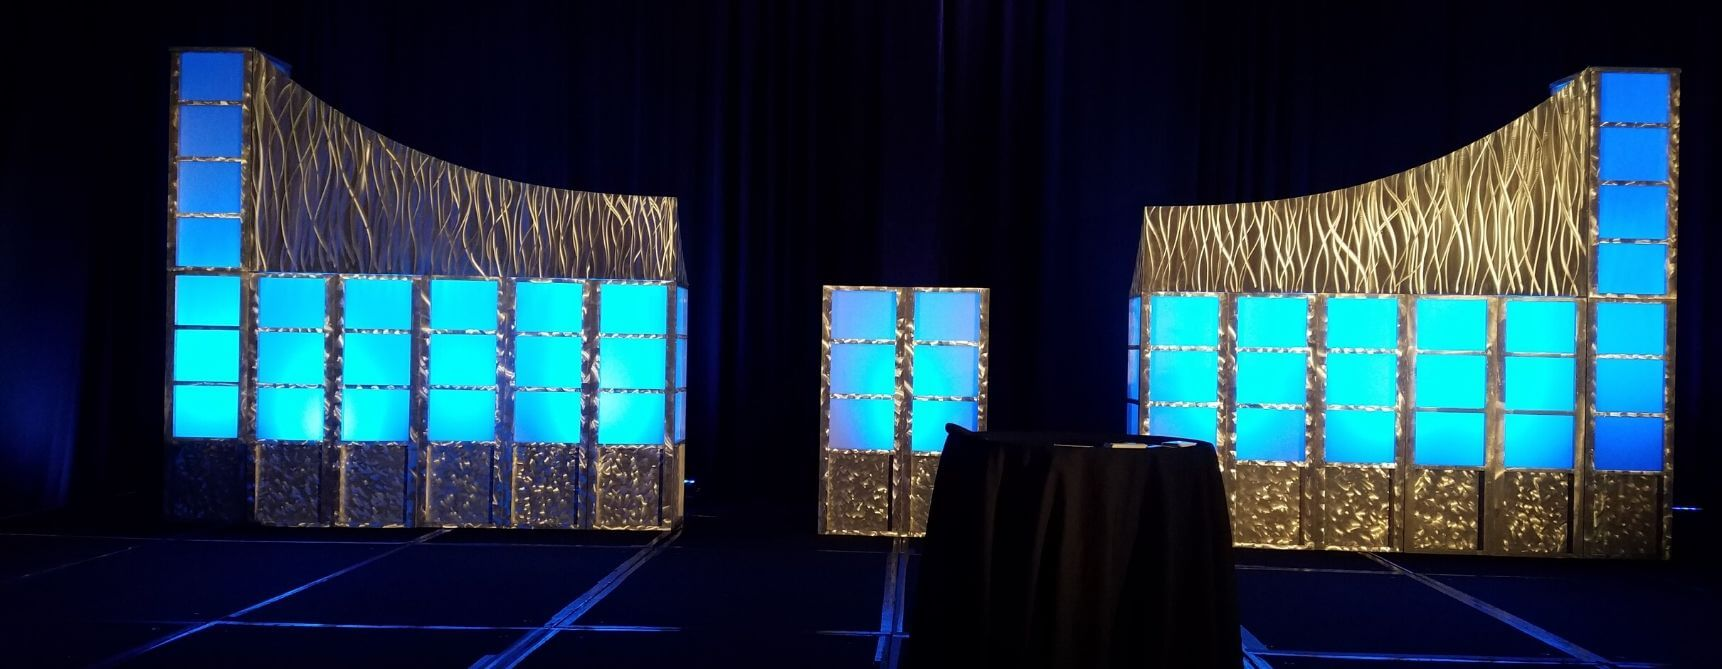 2 event stage setting